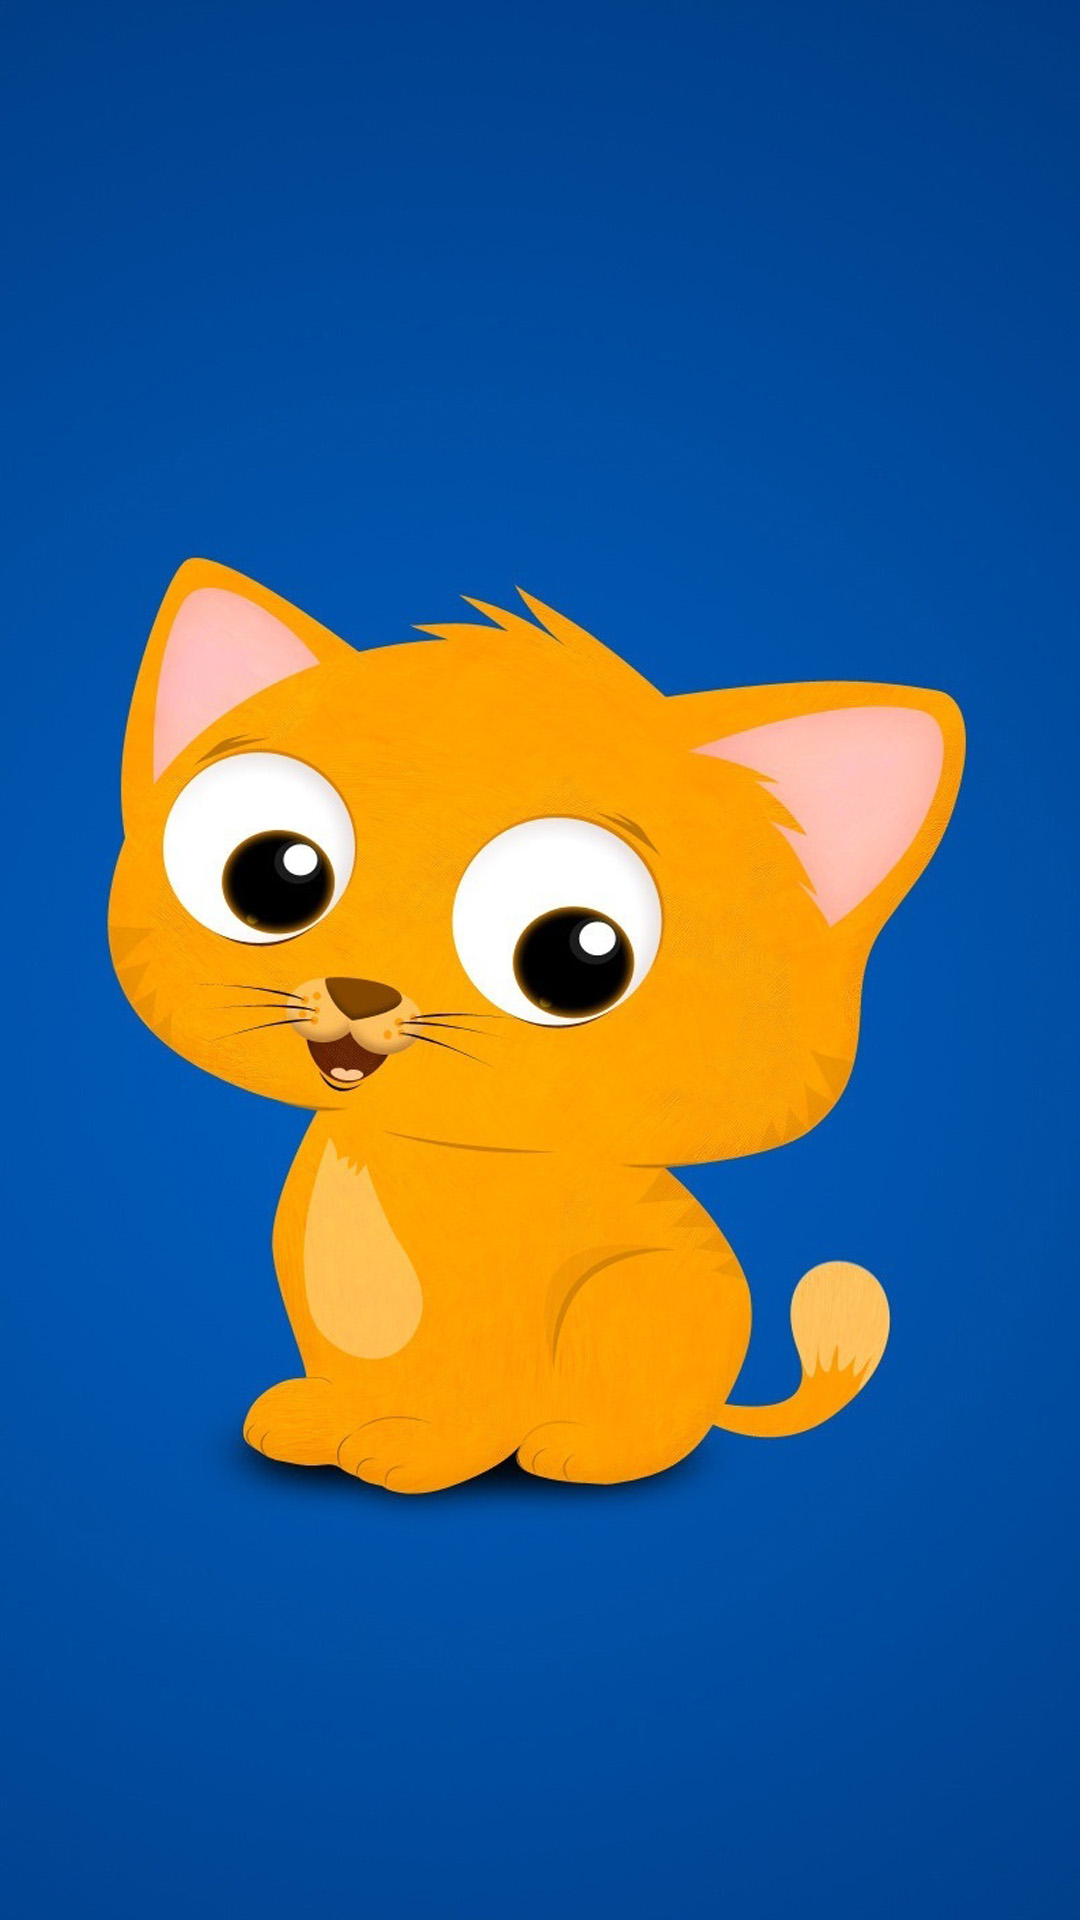 Cartoon Kitten Wallpaper